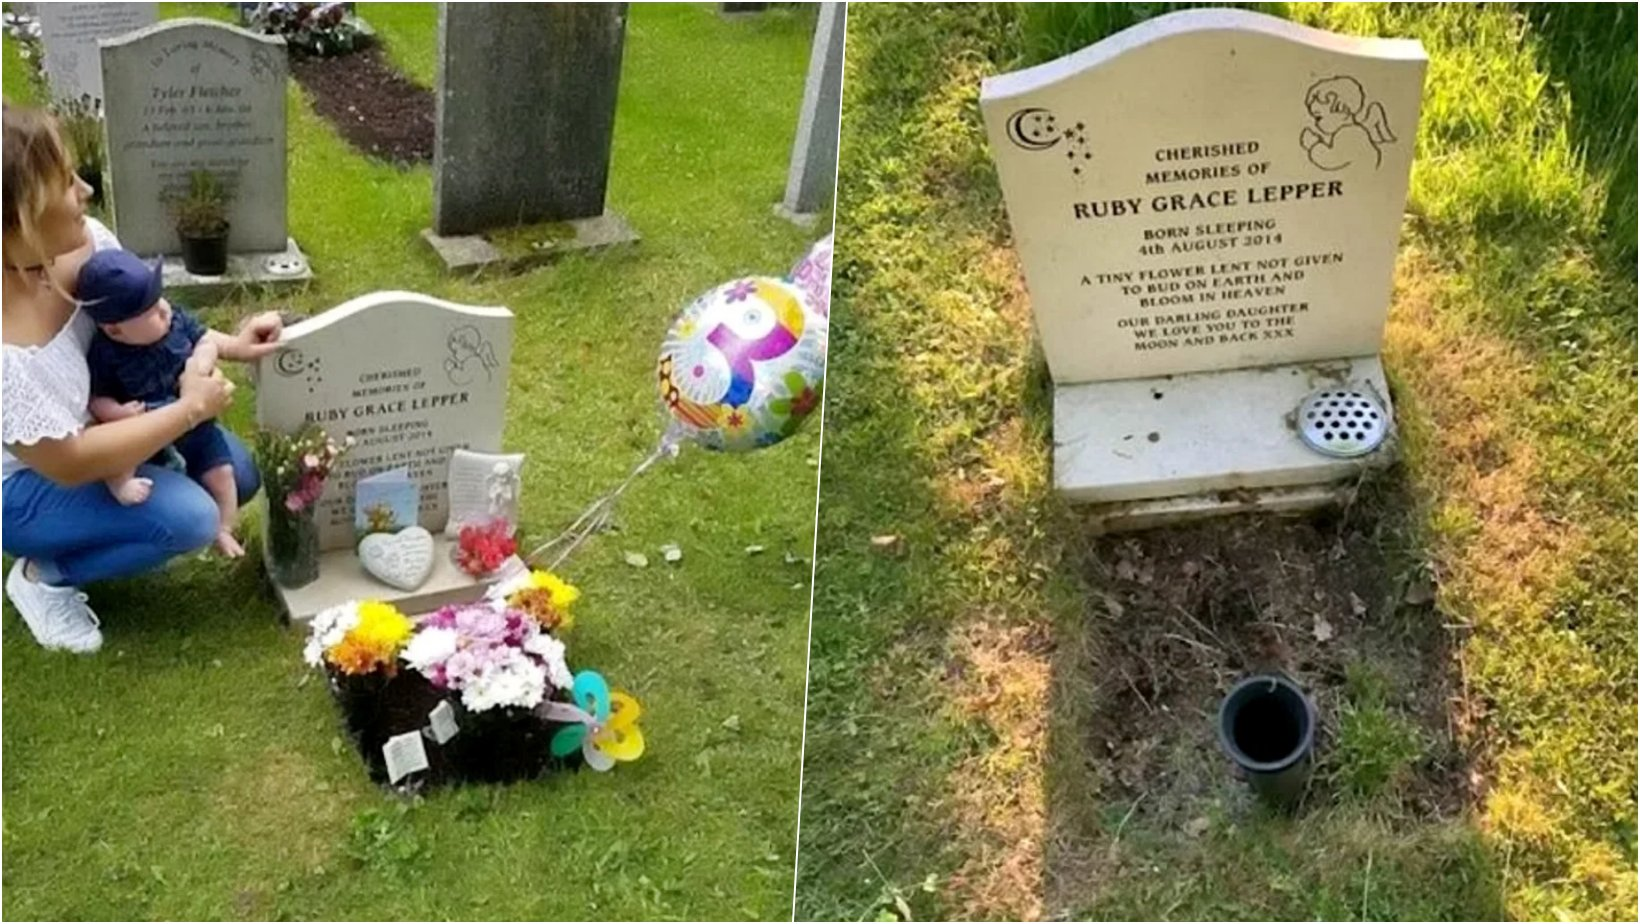 6 facebook cover 16.png?resize=1200,630 - Mother Is Beyond Heartbroken After Church Volunteers Removed & Destroyed Precious Tributes From Her Baby's Grave